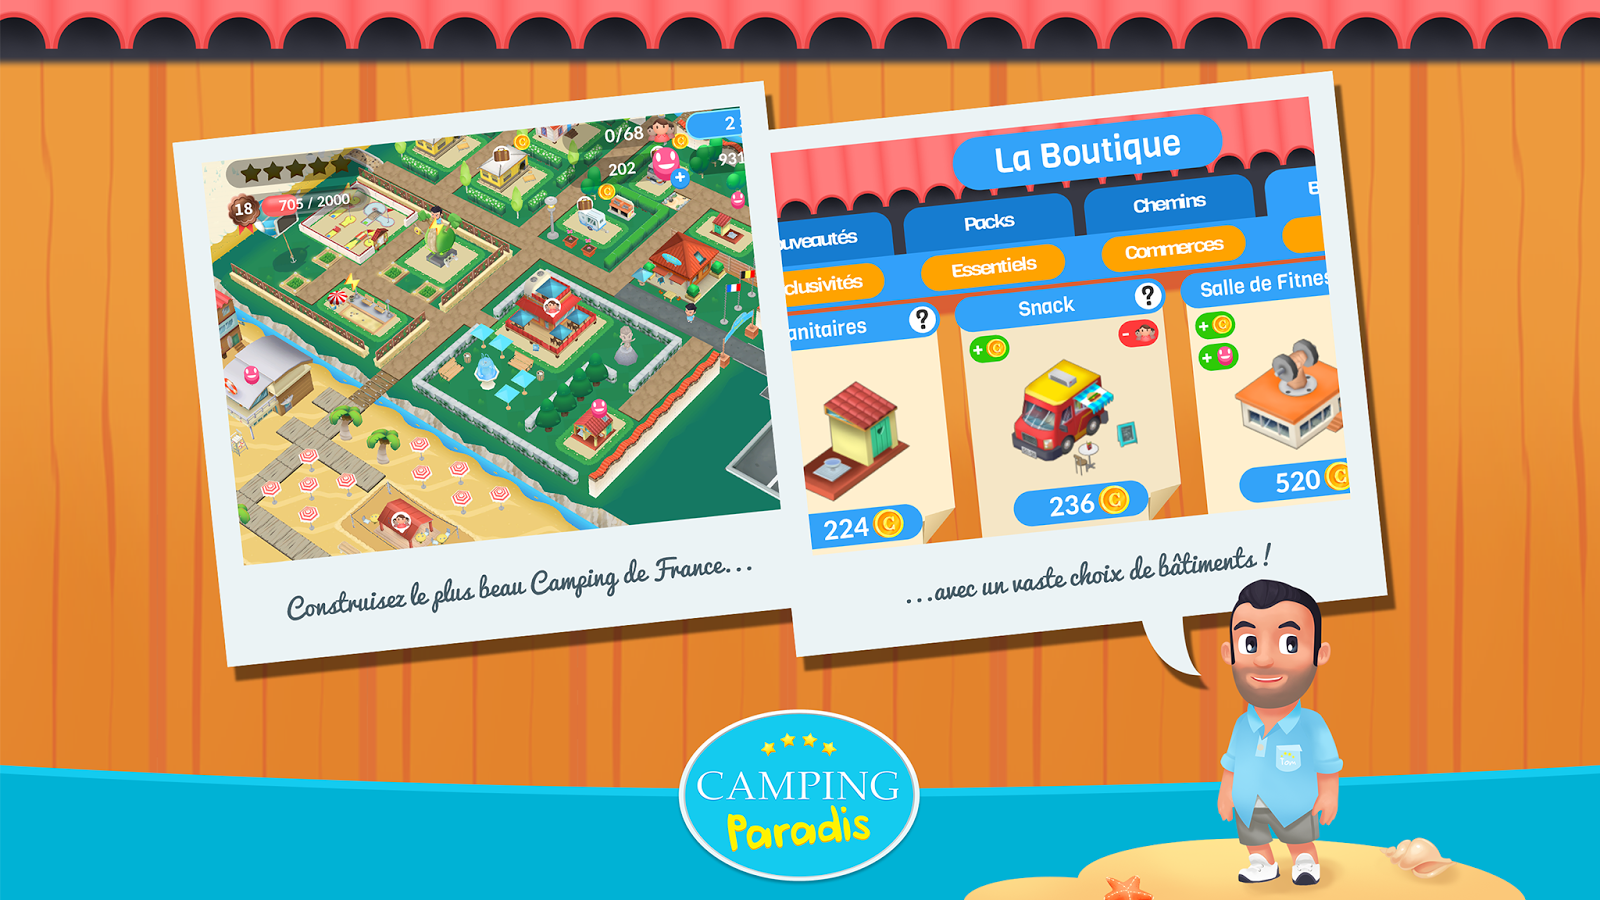 Camping Paradis Le Jeu Android Apps On Google Play